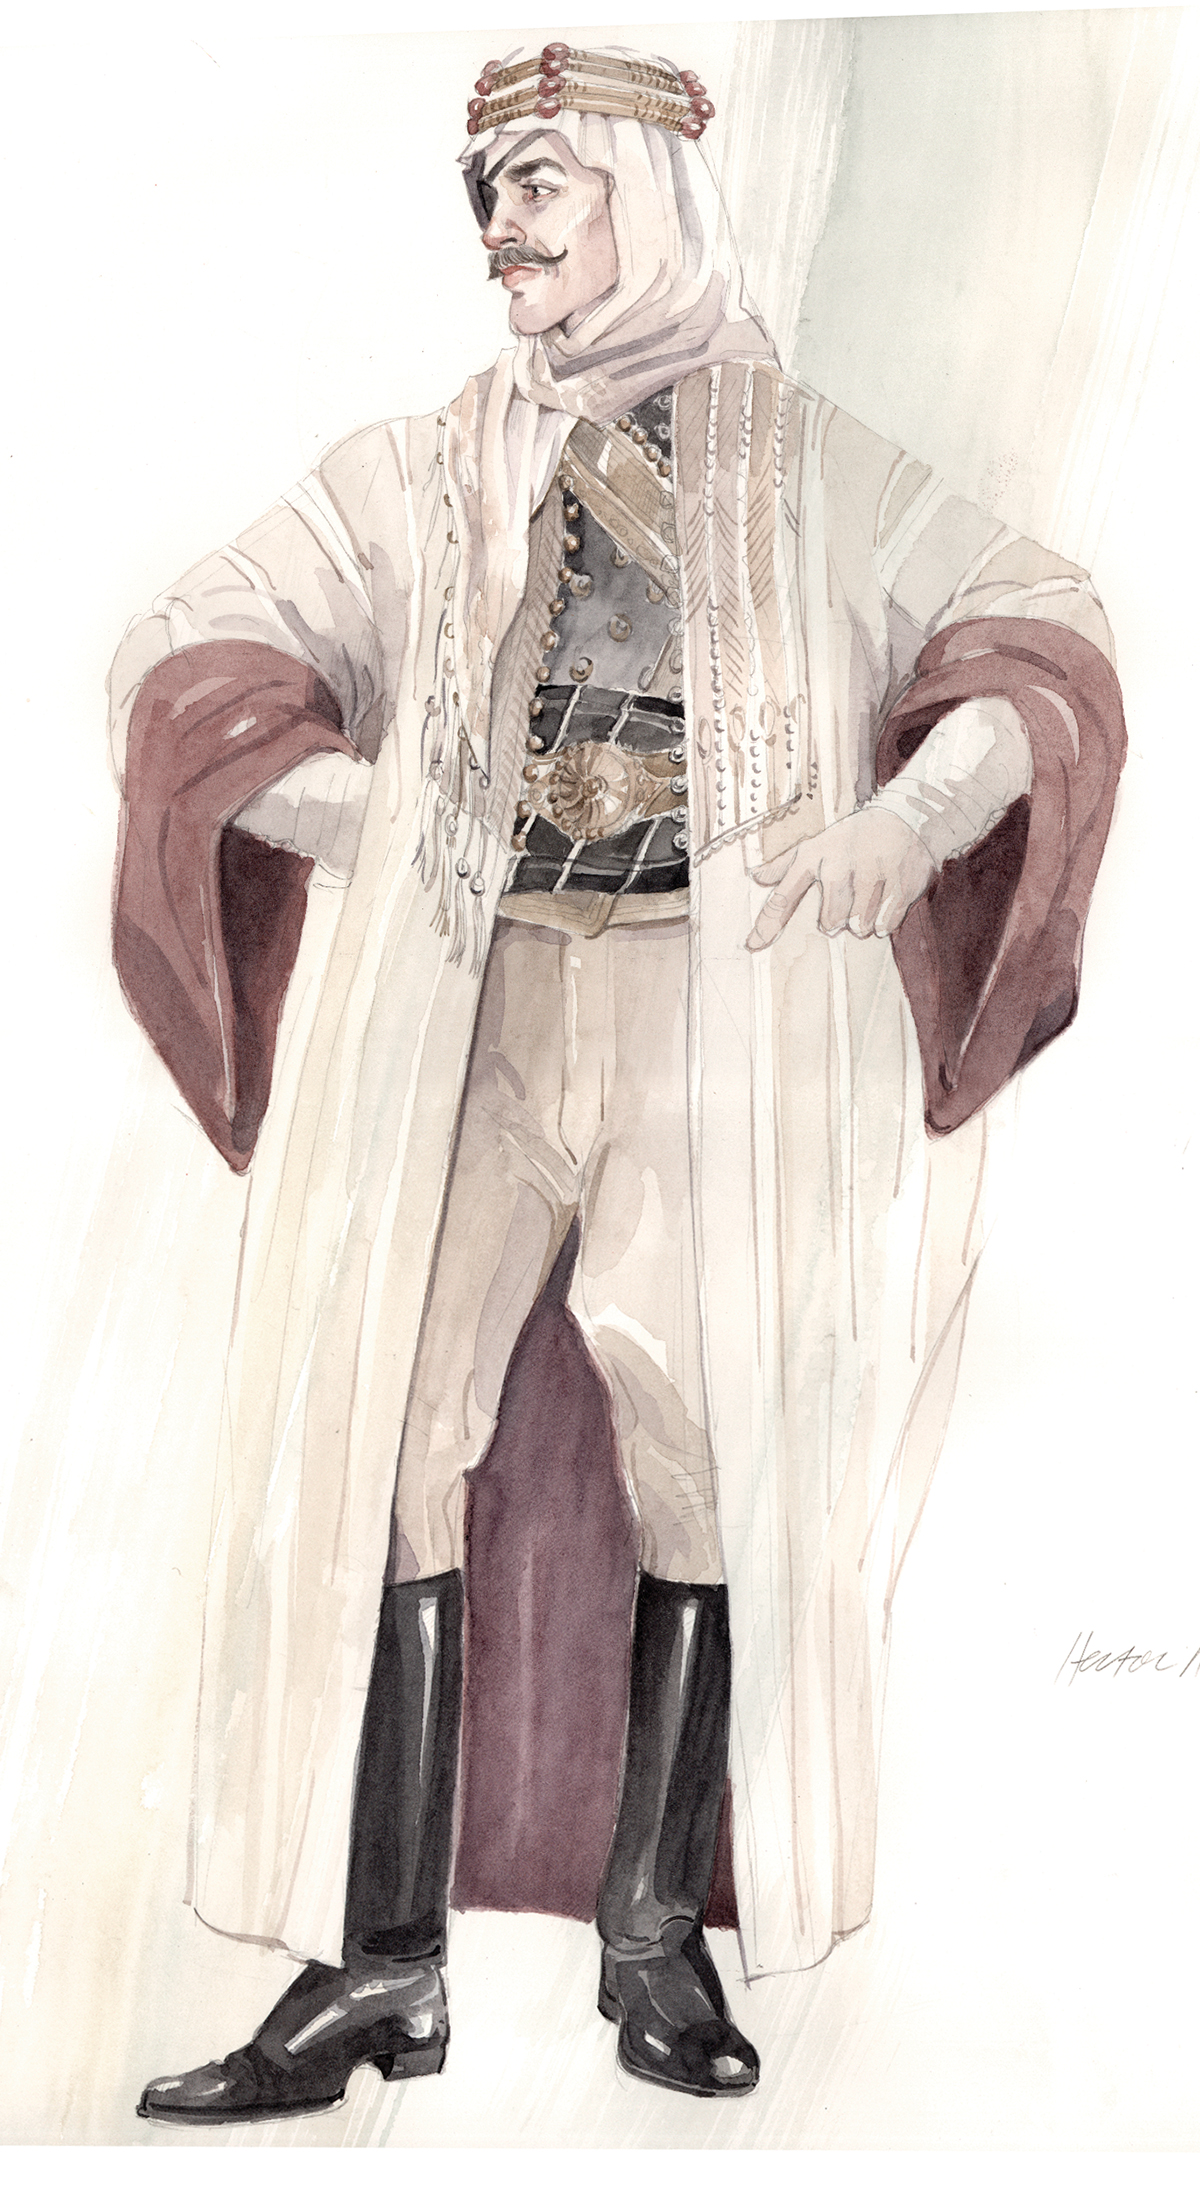 HH-Hector-arab-robes